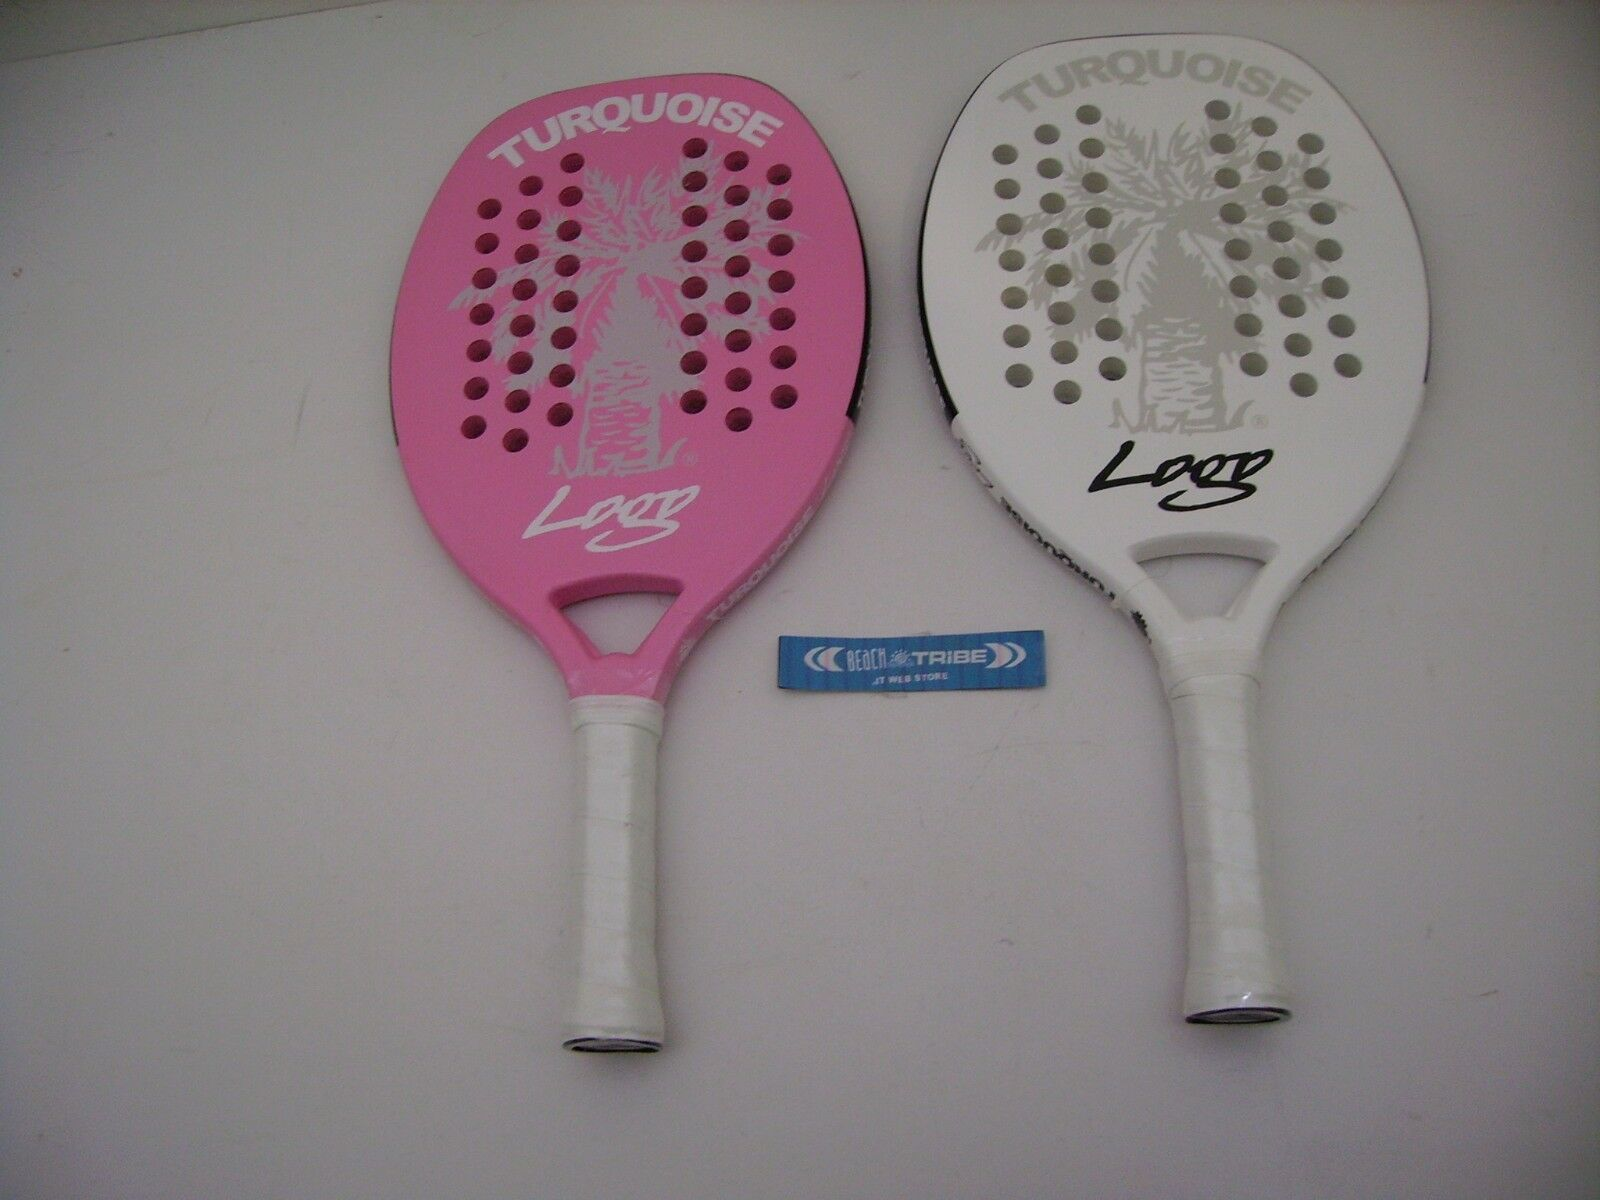 plage tennis racquets pair Turquoise Logo rose and blanc Logo 2017